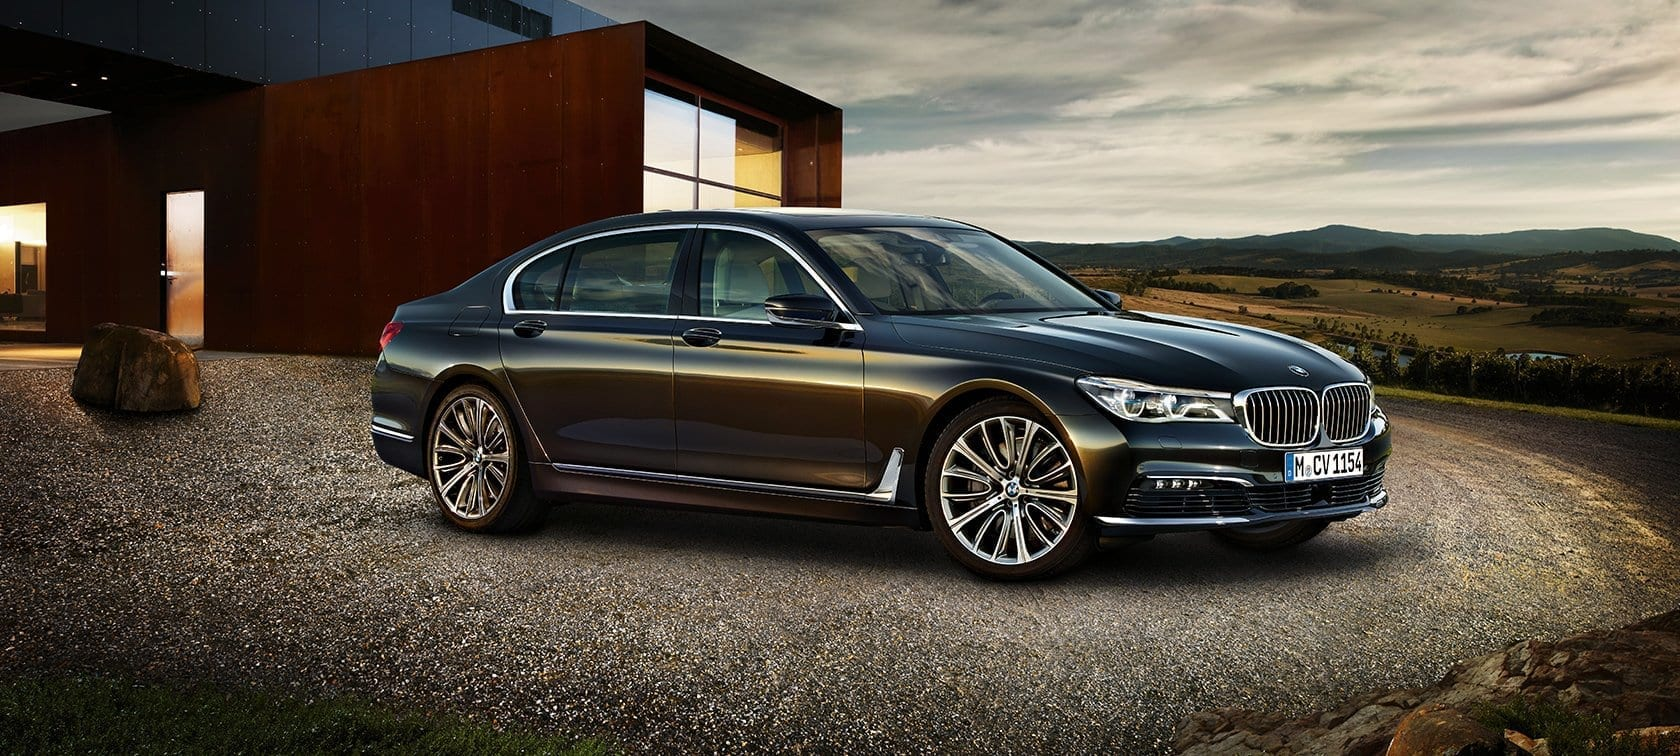 BMW 7 Series Sales Reports